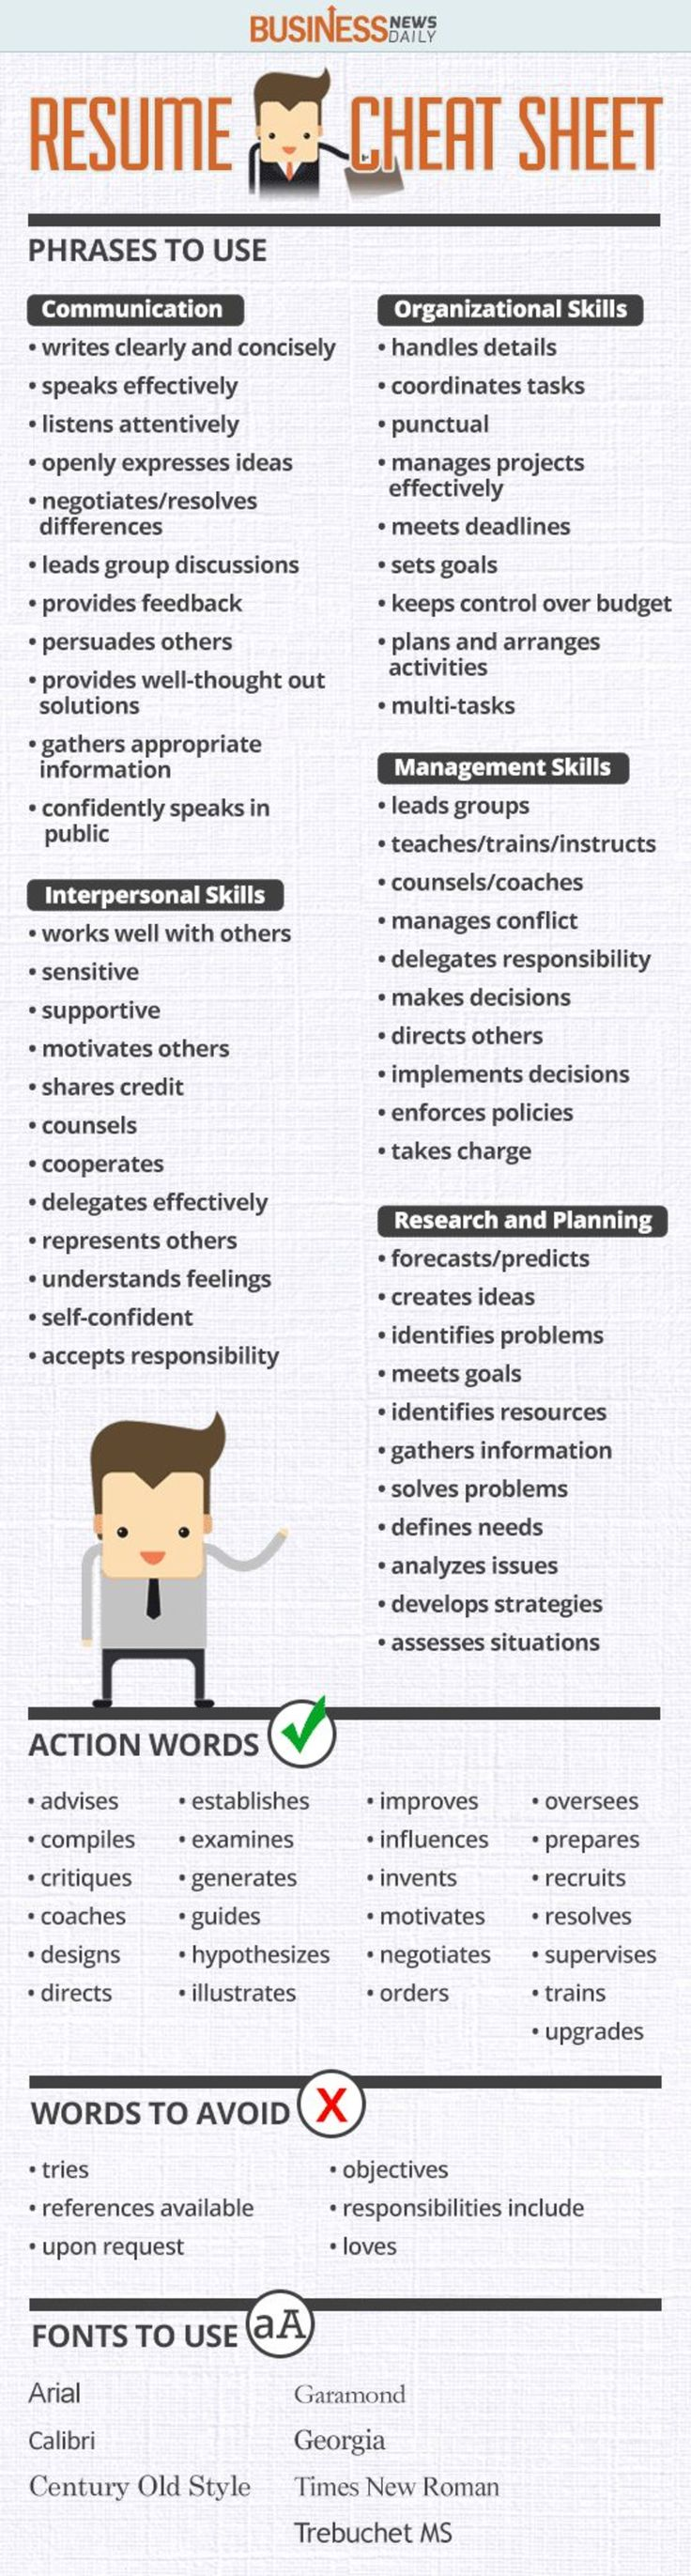 25 unique resume ideas ideas on pinterest resume resume